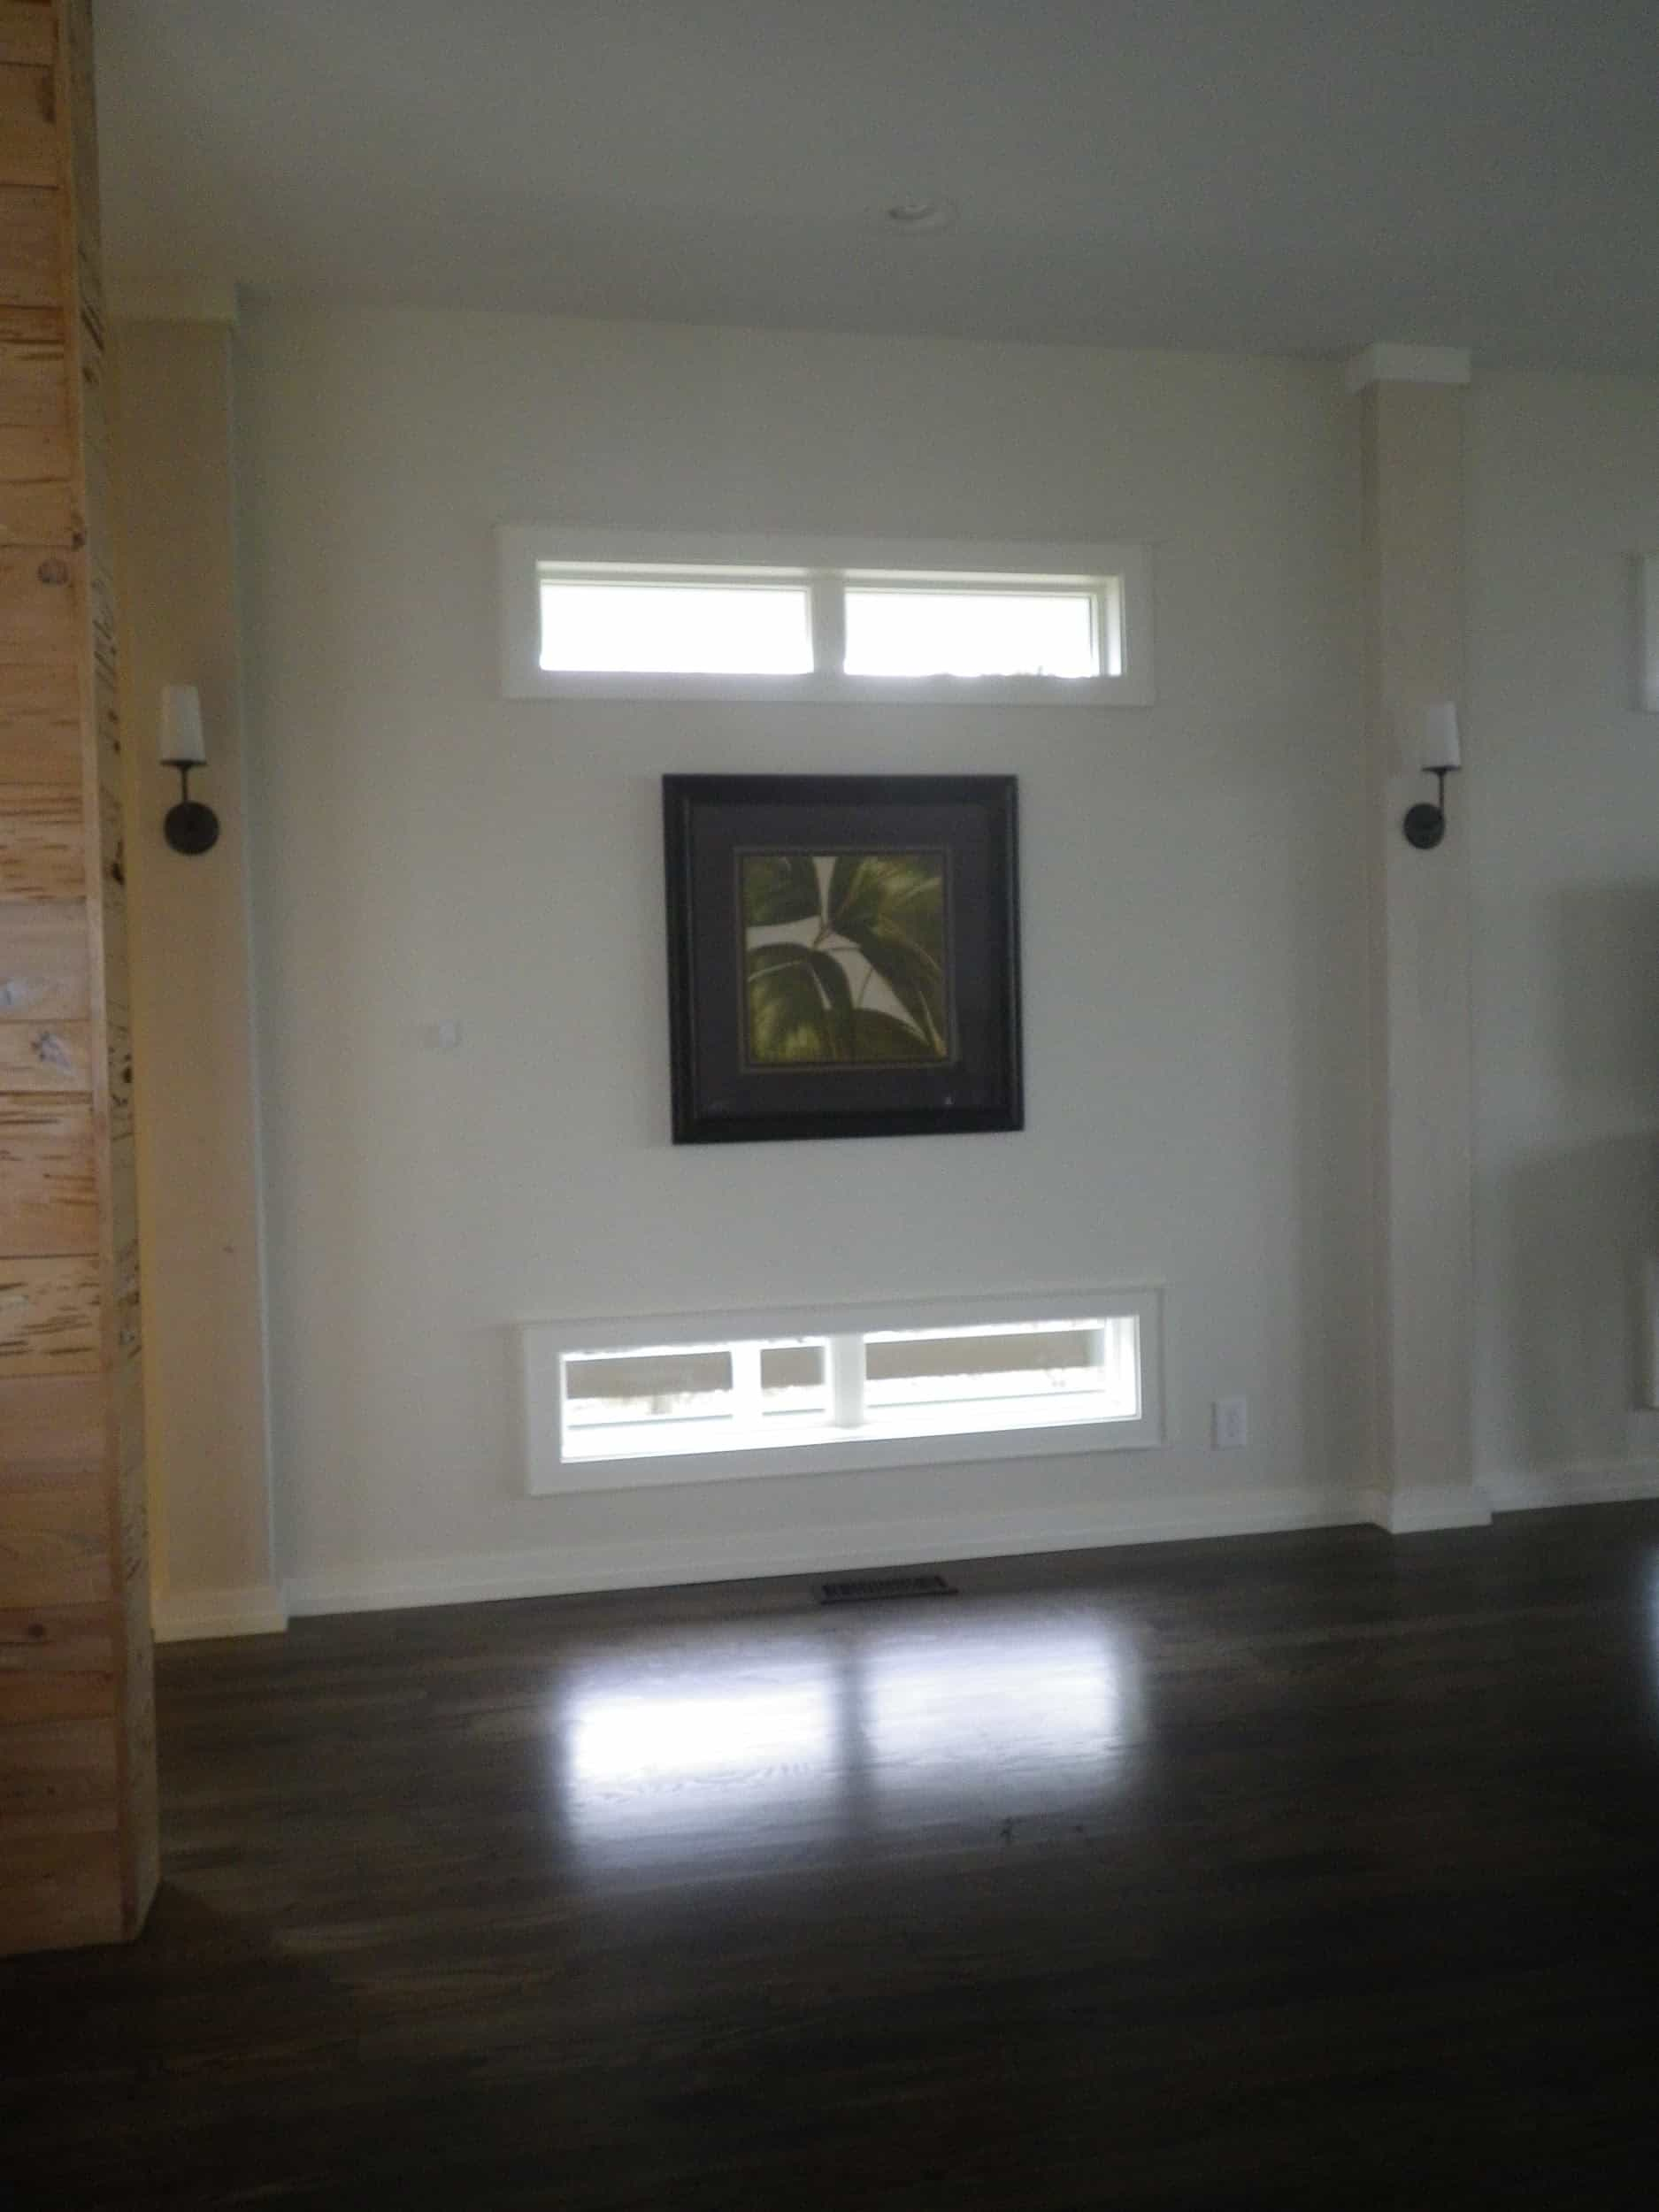 Windows are placed high and low on throughout the house.